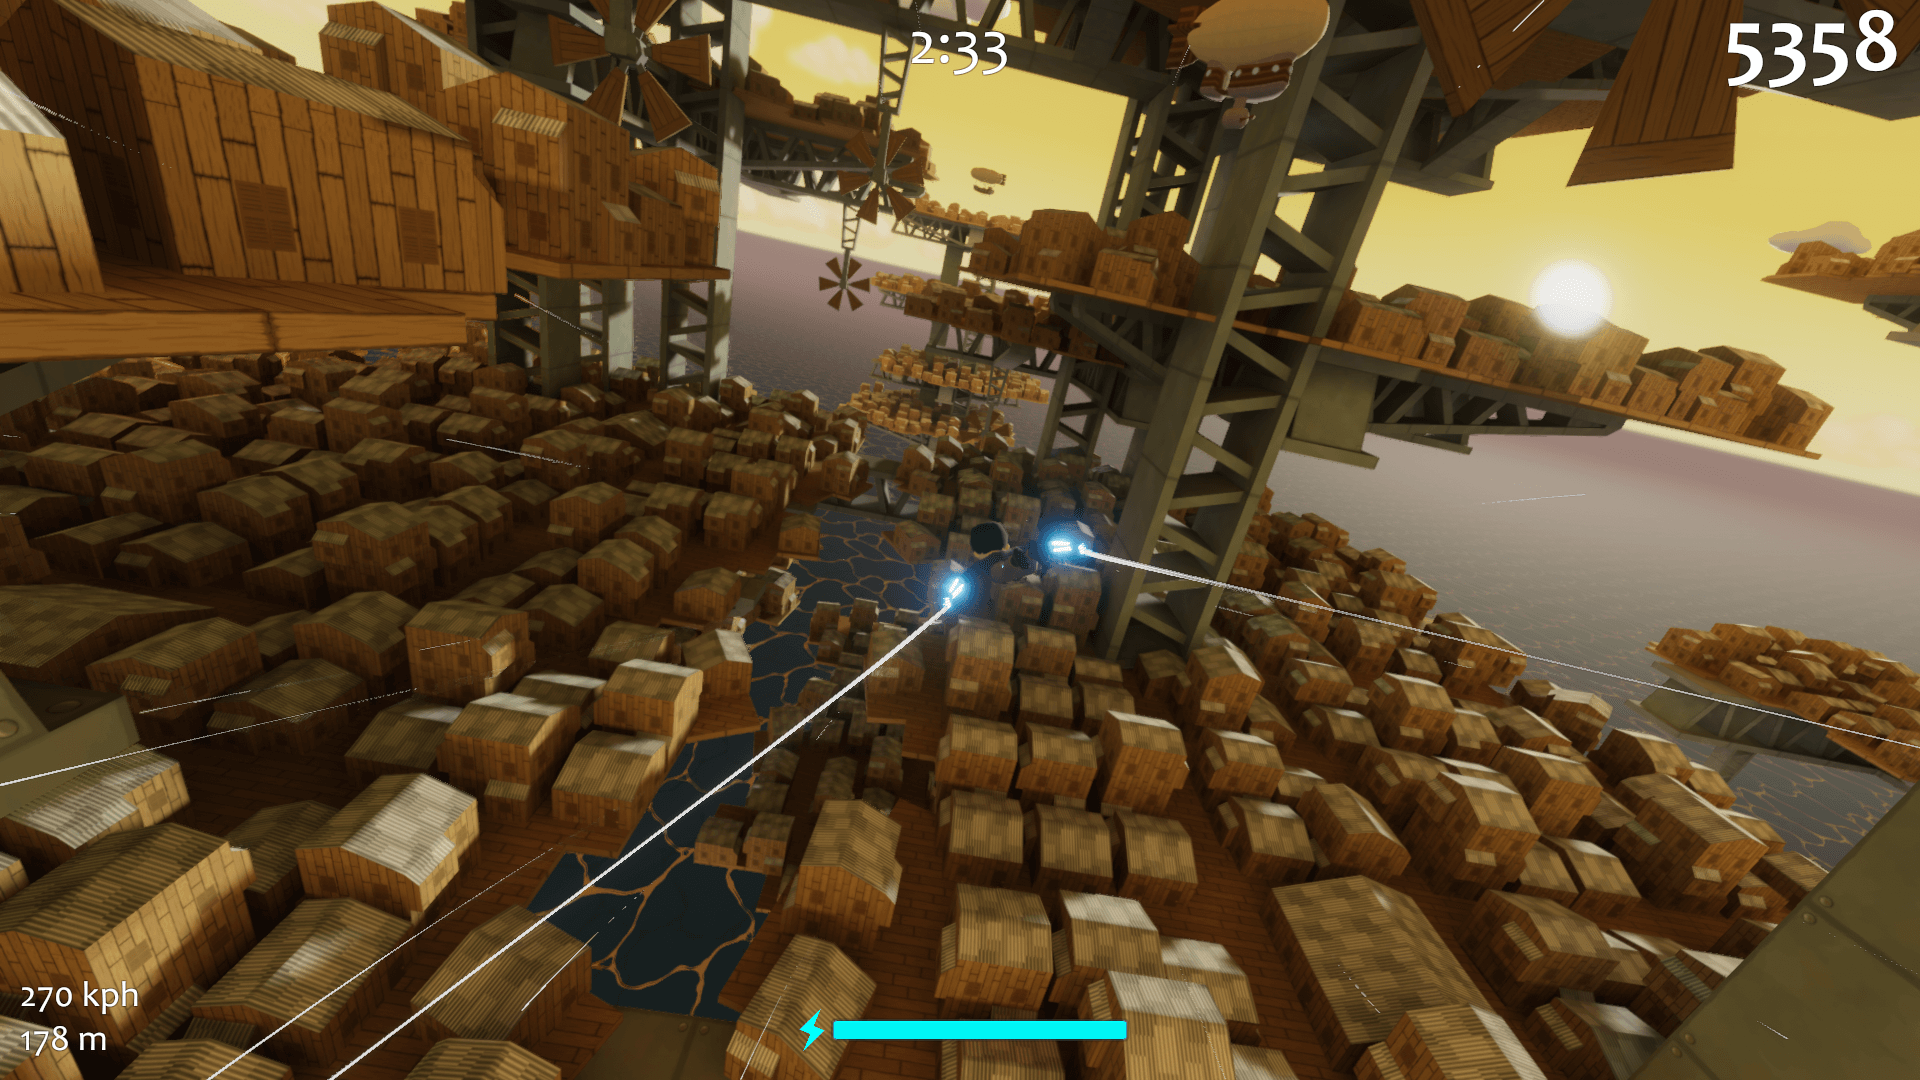 Flying near a windmill among metal girders, wooden platforms, and haphazardly constructed shacks